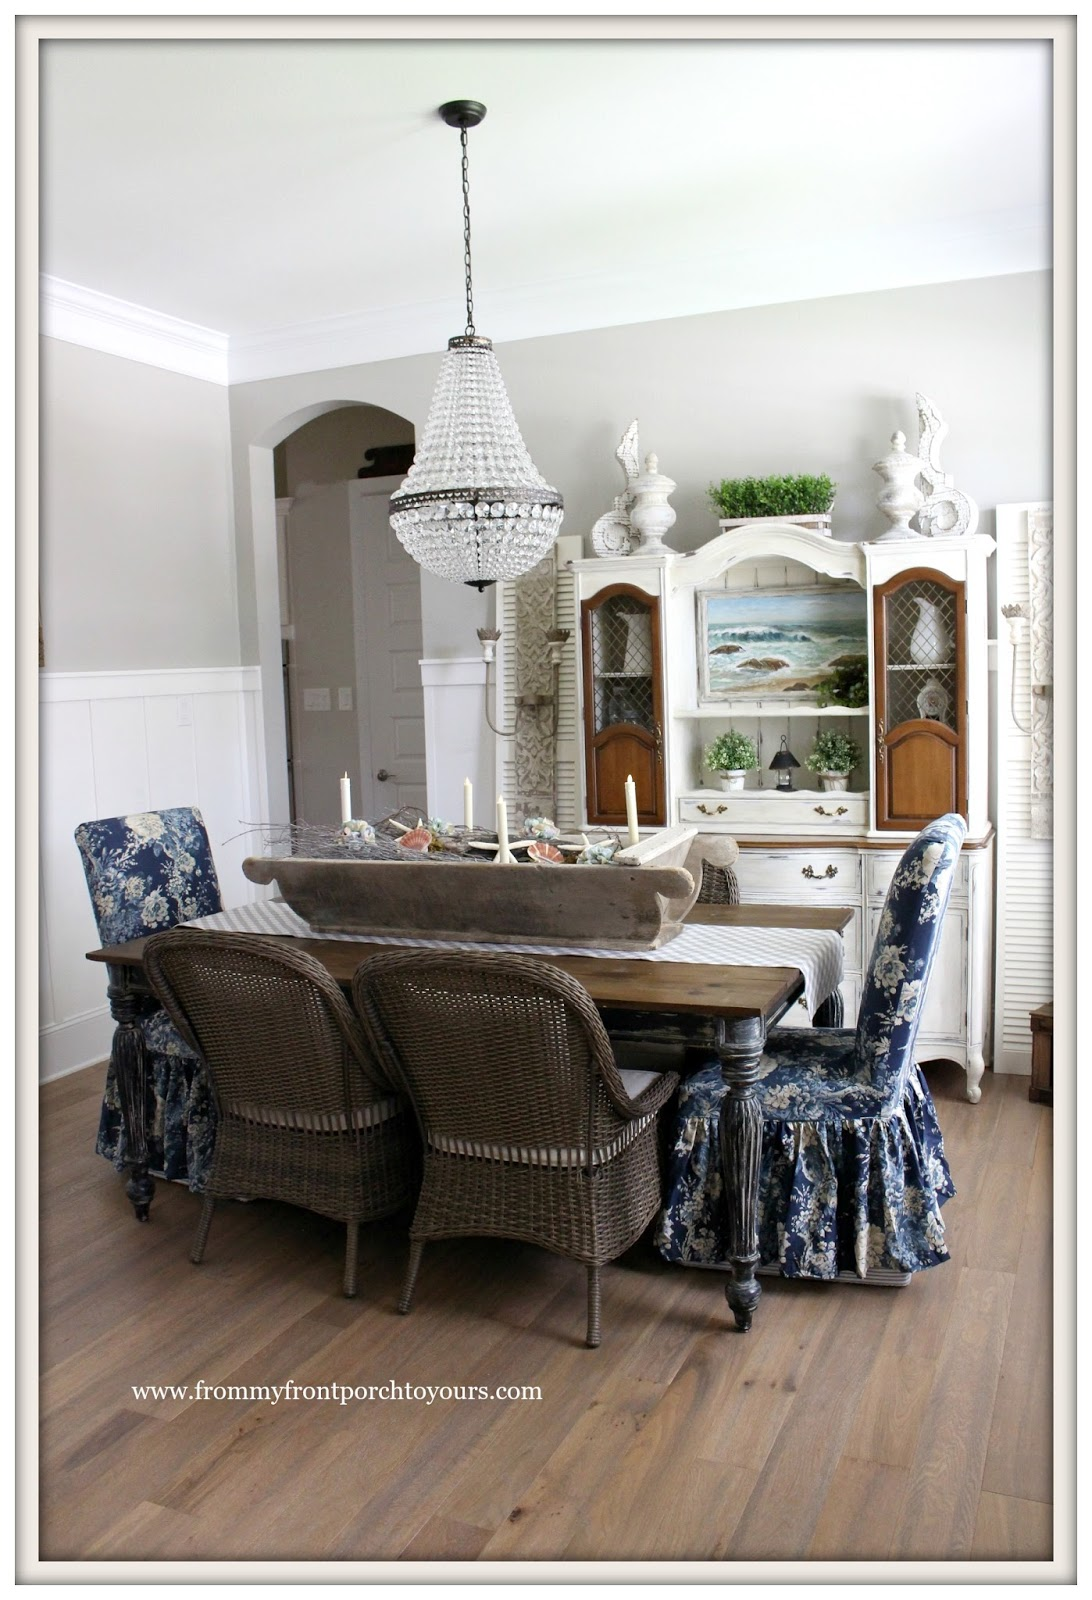 French Country Kitchen Chairs Broan Exhaust Fans From My Front Porch To Yours: Farmhouse ...